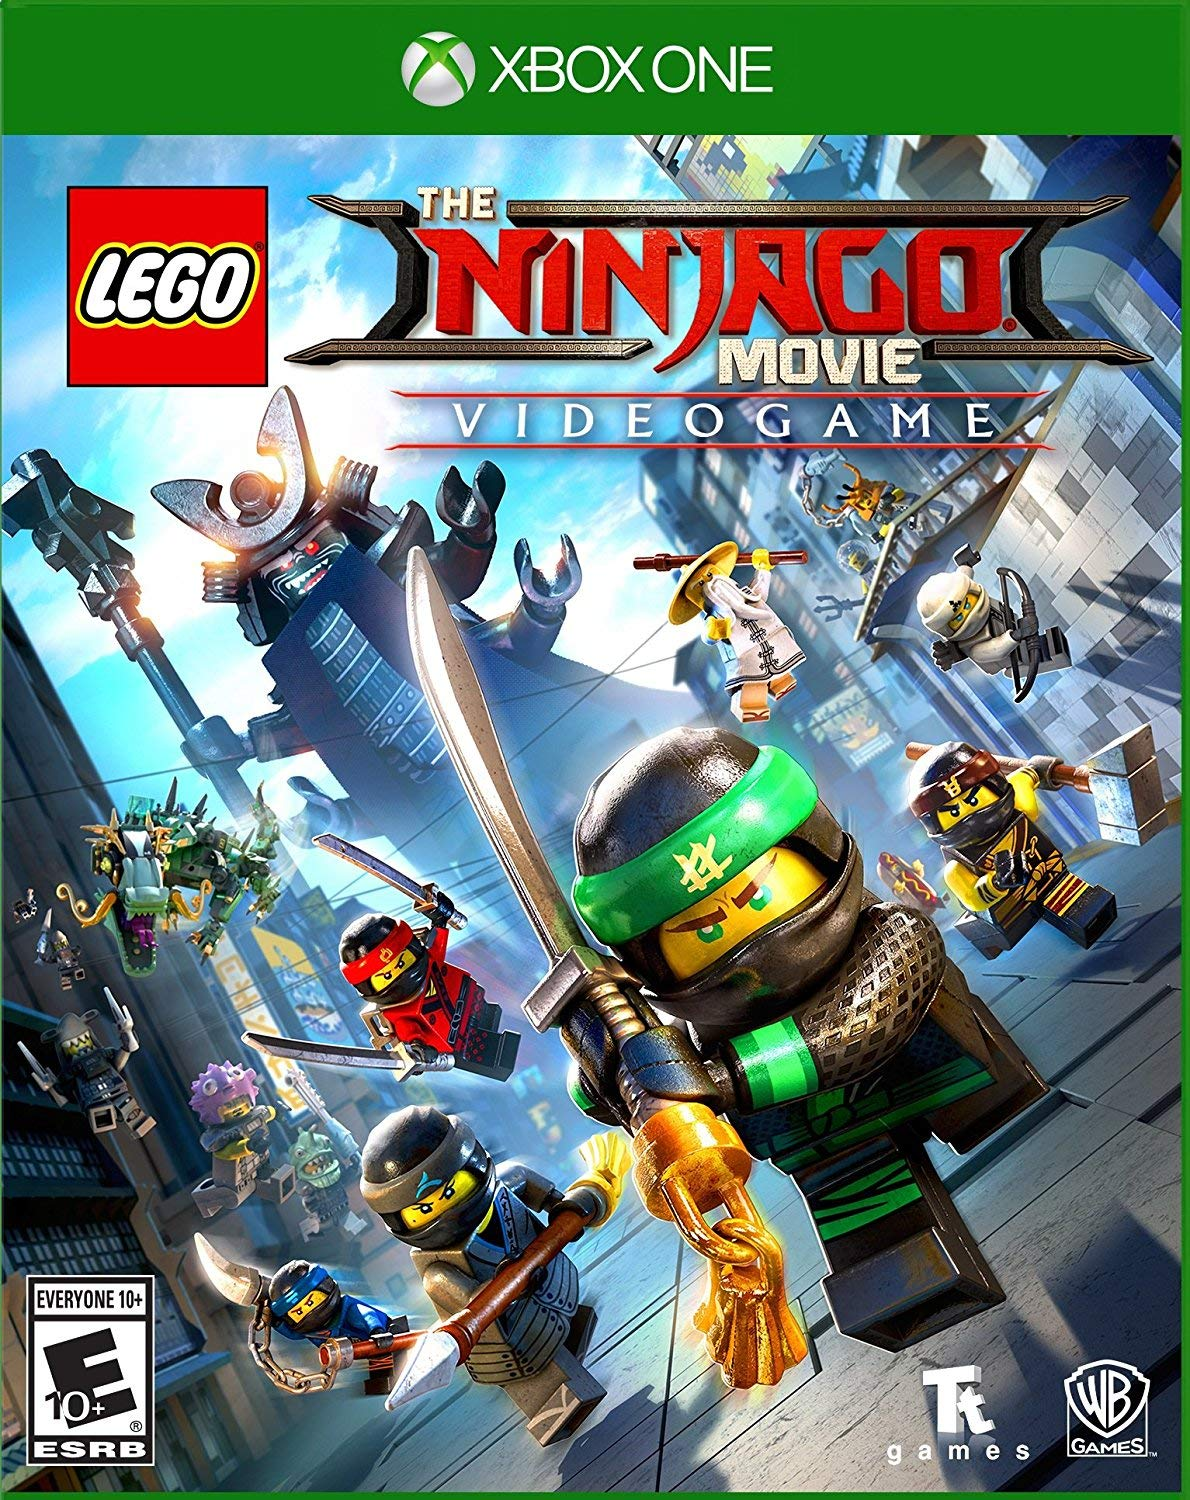 Amazon.com: The Lego Ninjago Movie Videogame - Xbox One: Whv Games: Video  Games